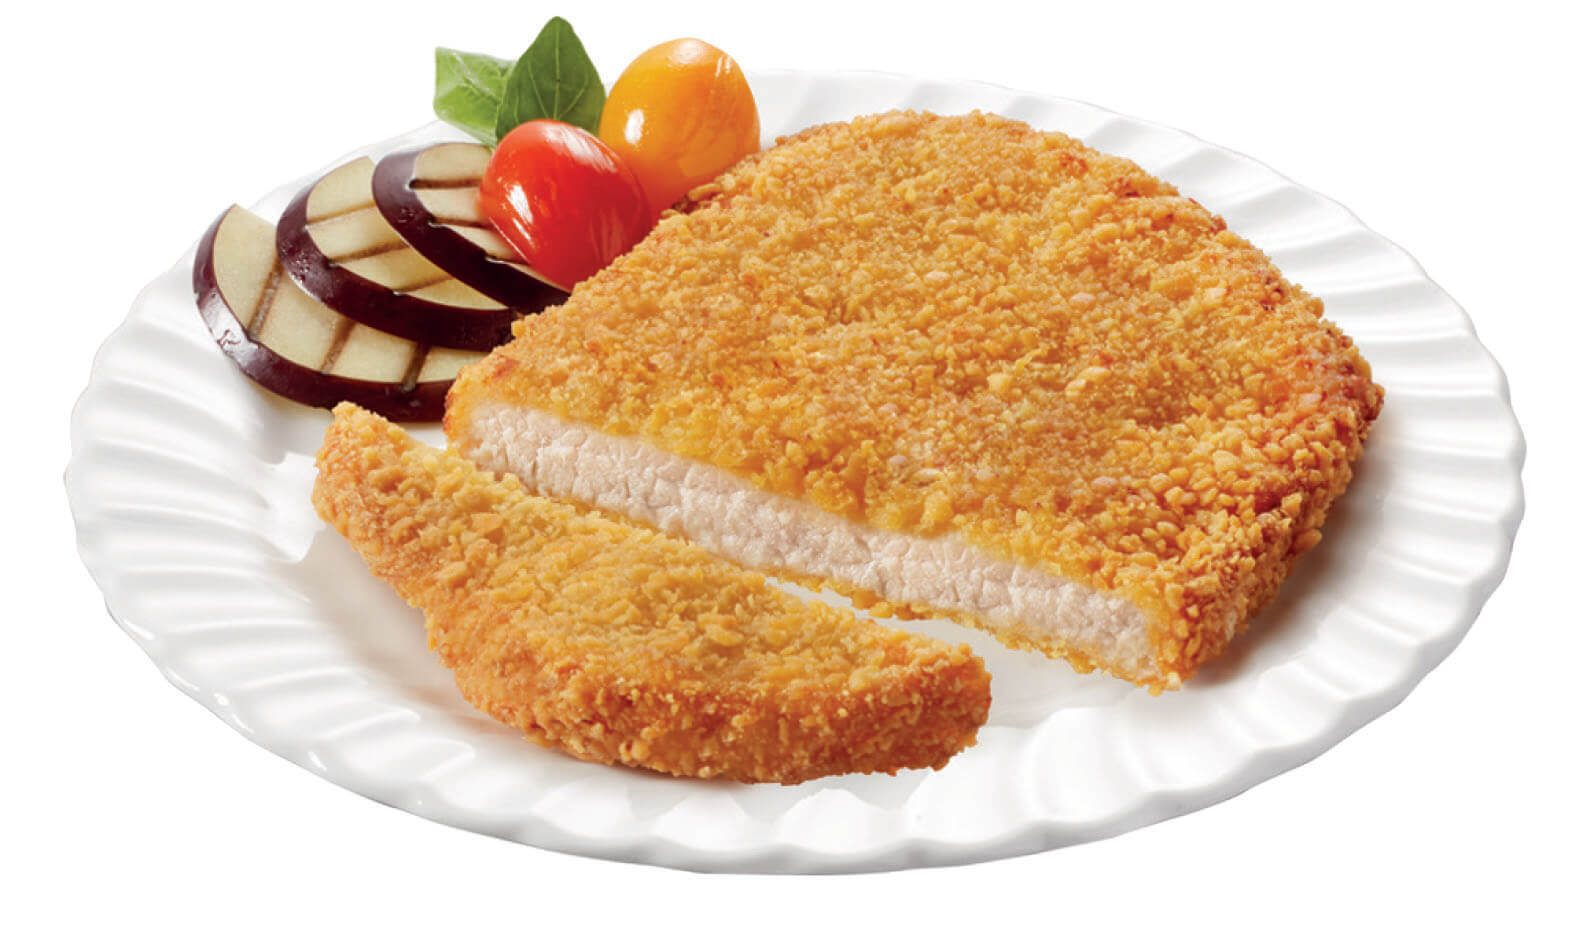 CUBOX Grand milanesa de pollo